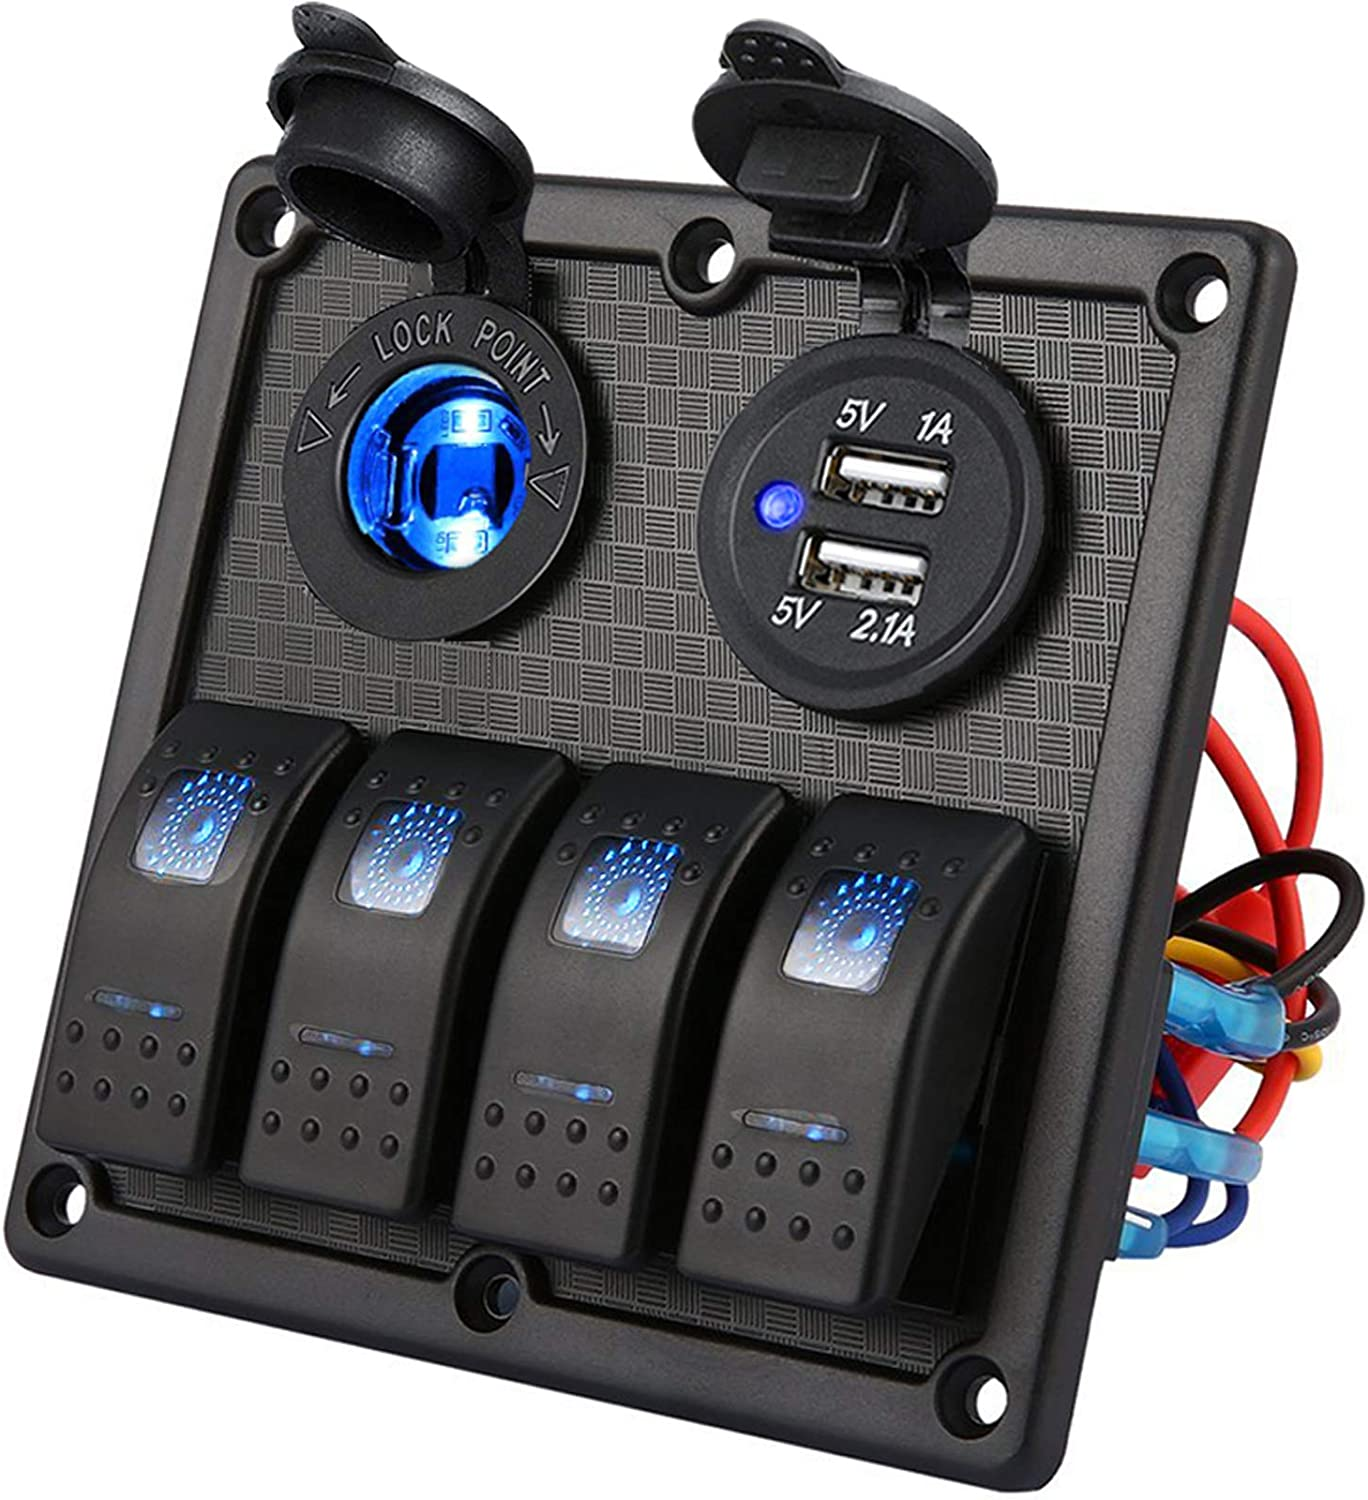 Kohree 4 Gang Marine Boat Rocker Switch Panel, 12V Waterproof LED Lighted Toggle Switches Fuse Breaker Protected Control with 12 Volt Marine USB Power Outlet for Car Boat RV Scooter Truck Vehicles: Industrial & Scientific